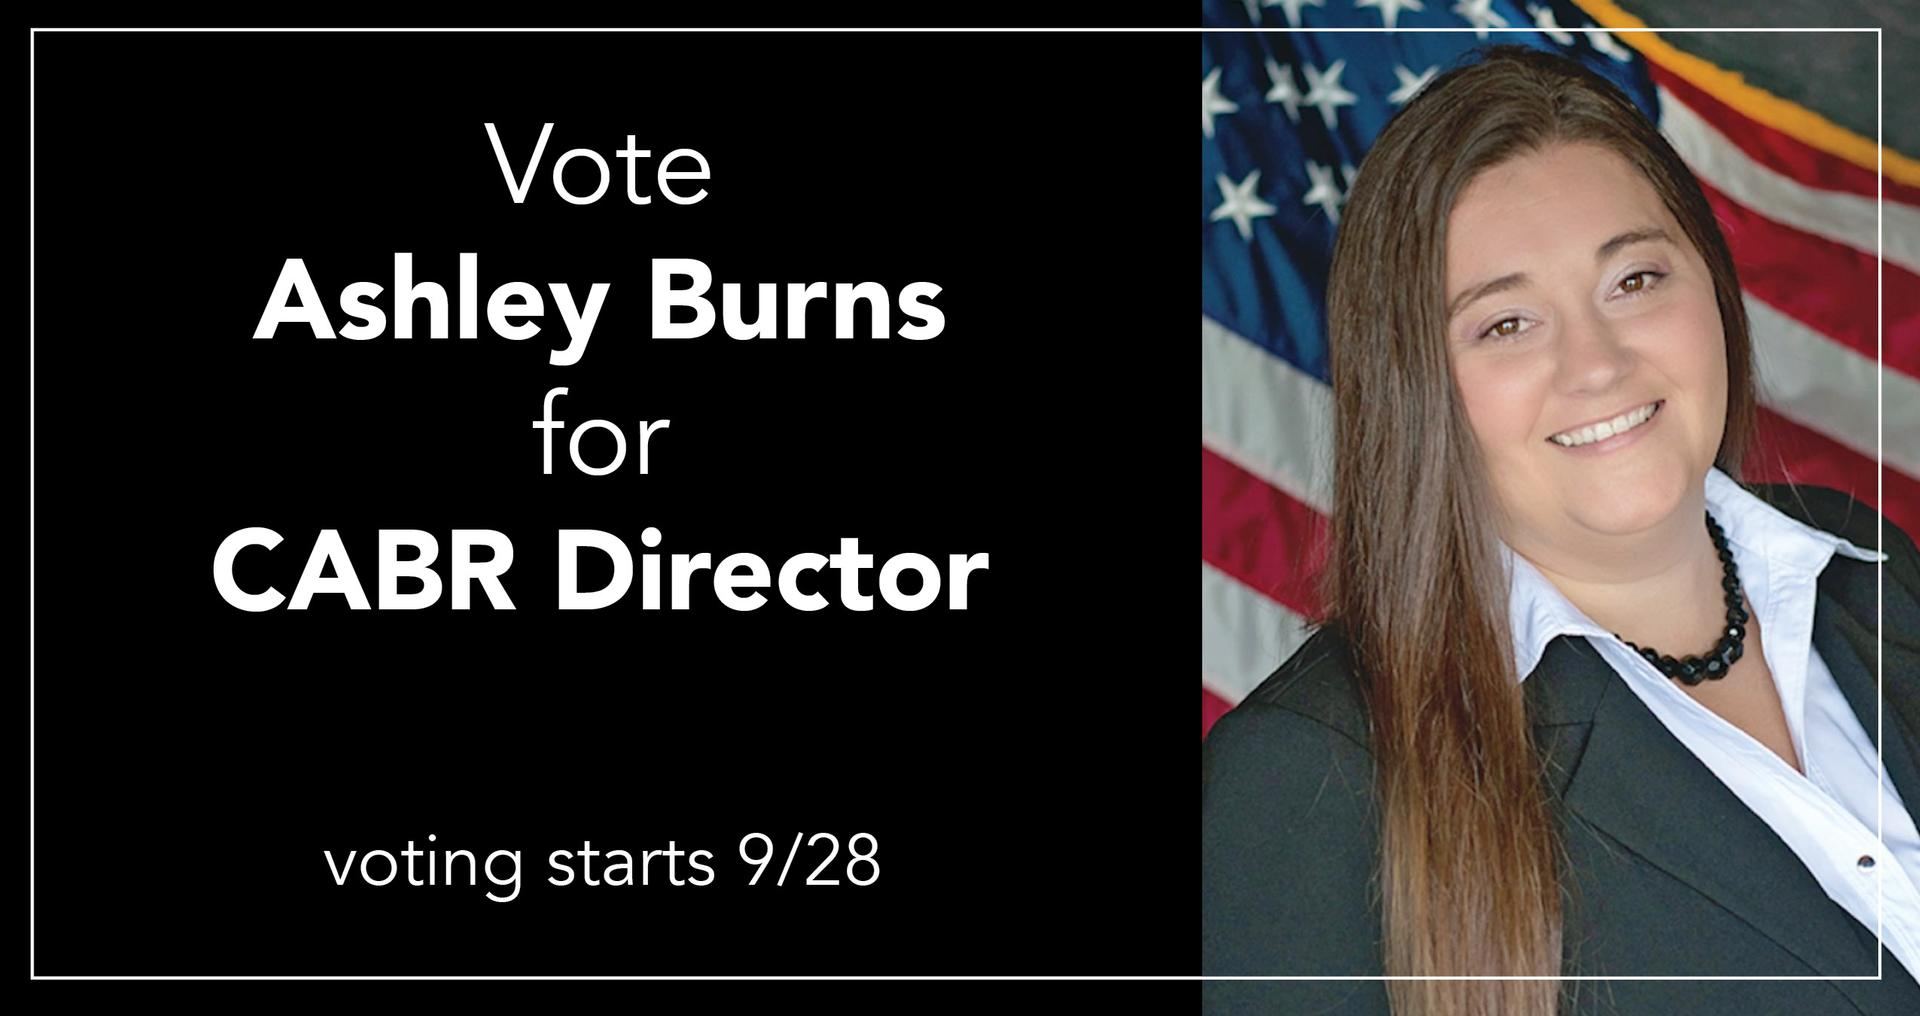 Hello! I'm Ashley Burns and I'm running for CABR Director Main Photo